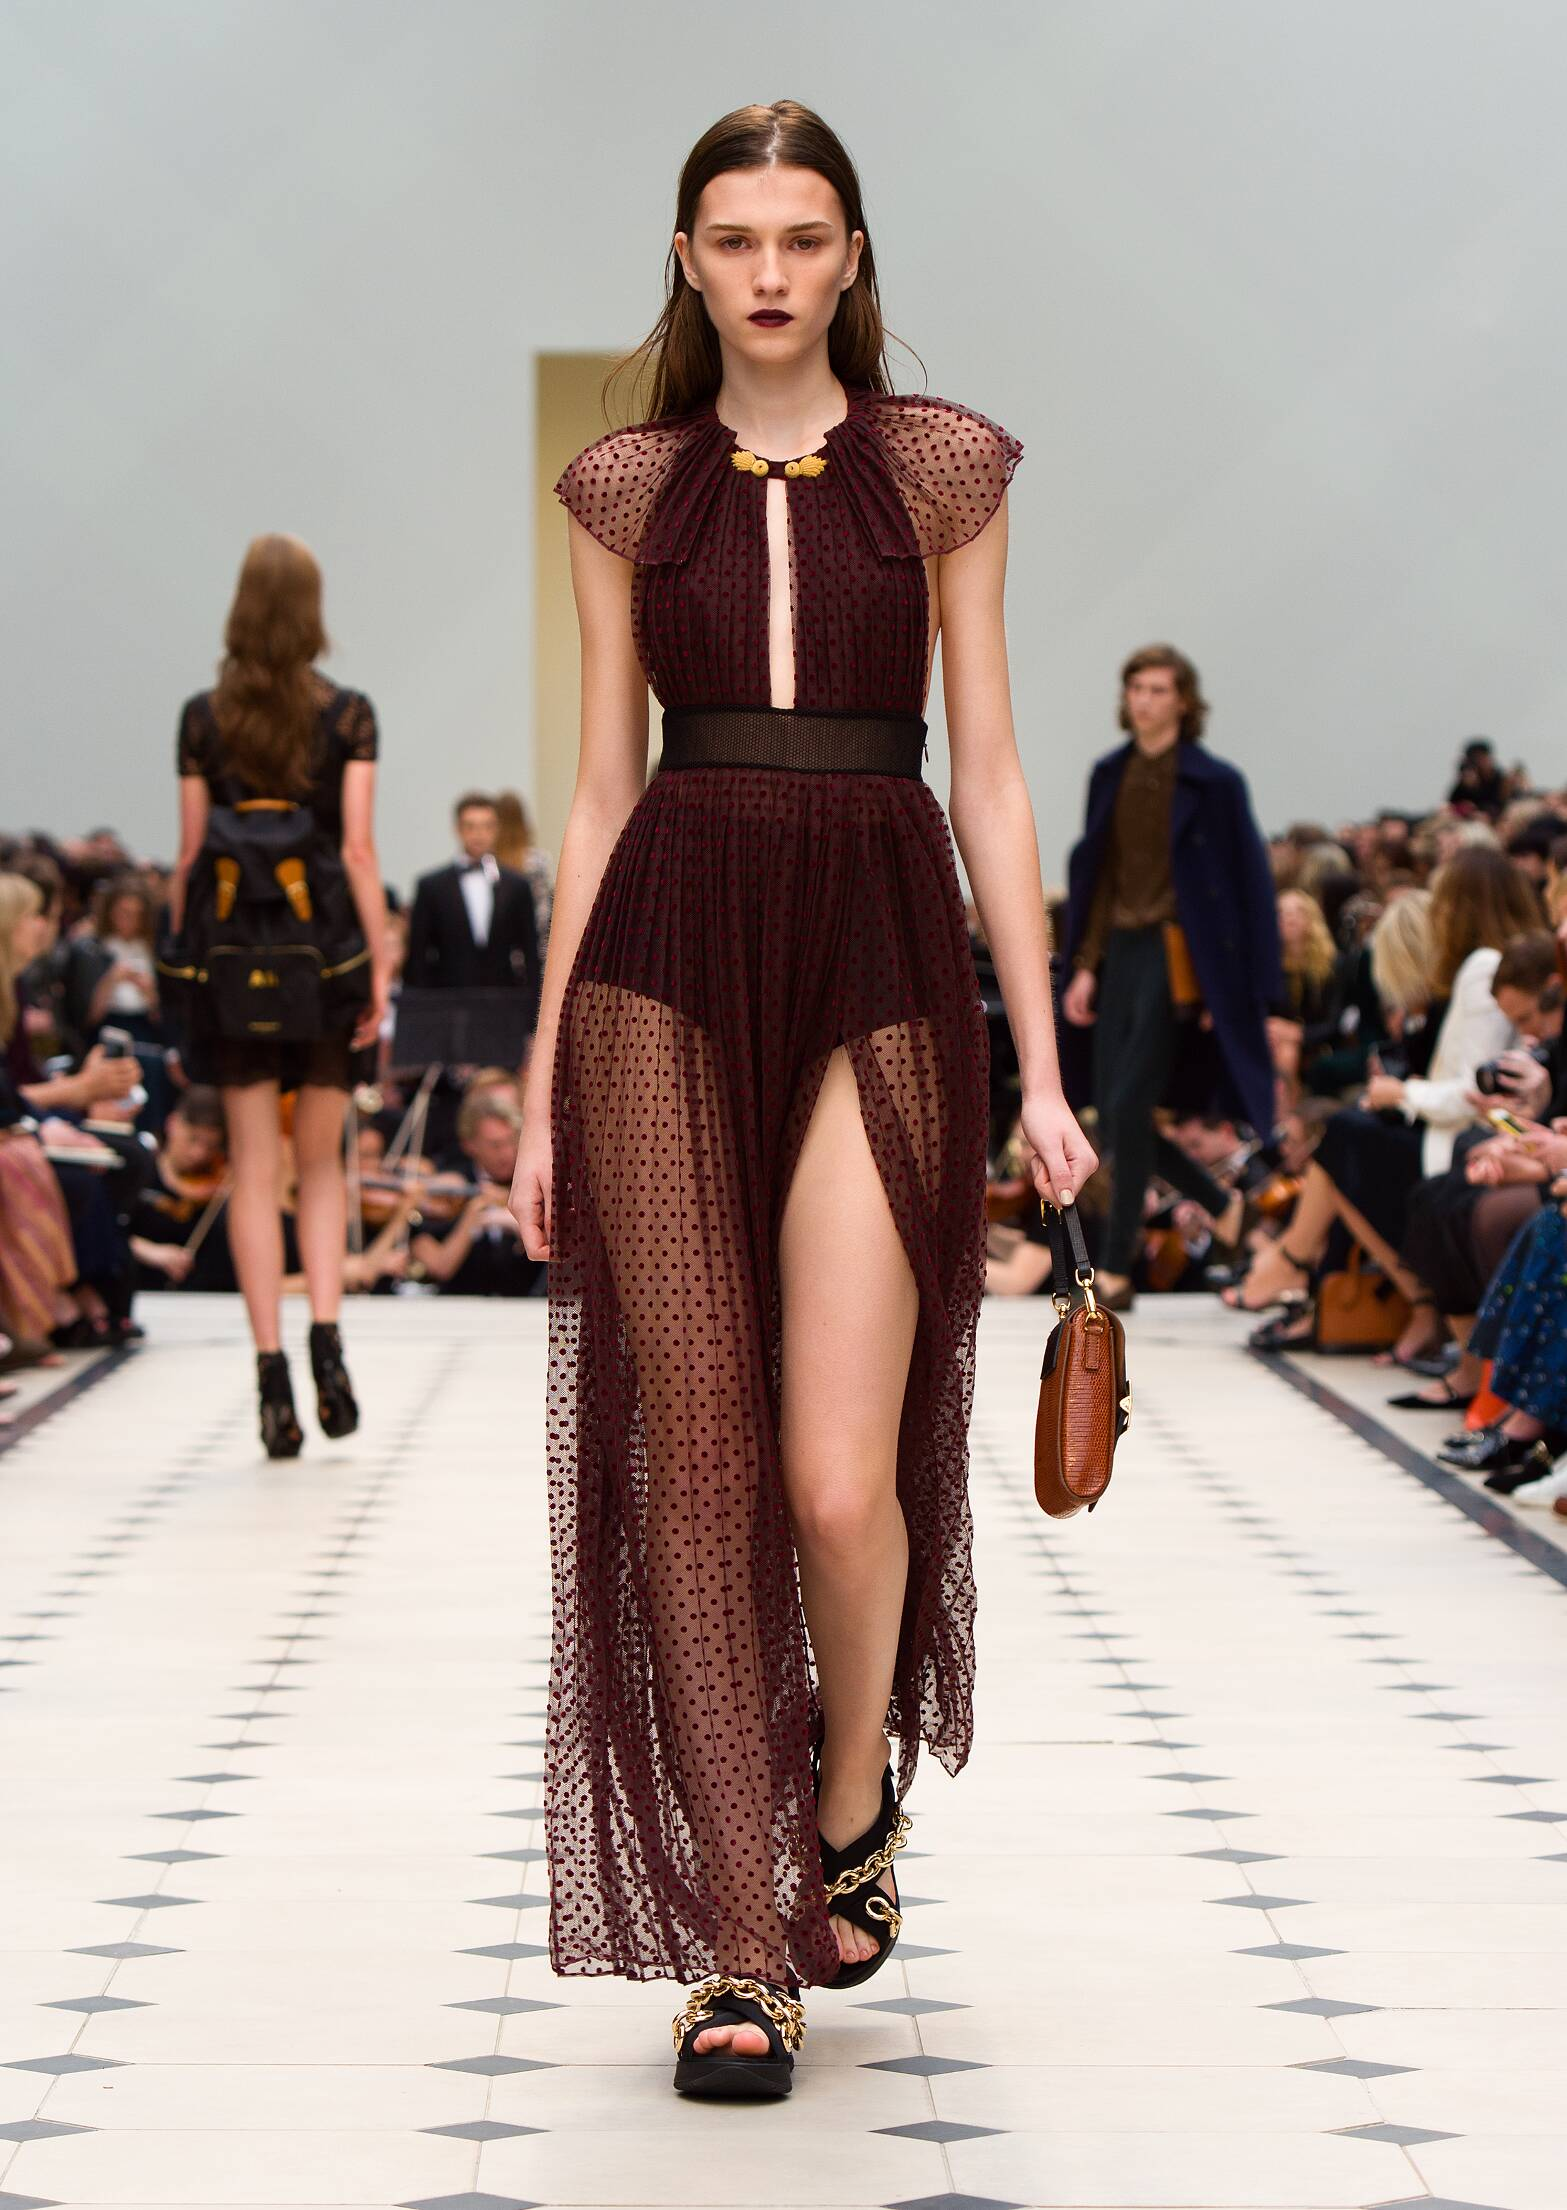 BURBERRY PRORSUM SPRING SUMMER 2016 WOMEN'S COLLECTION